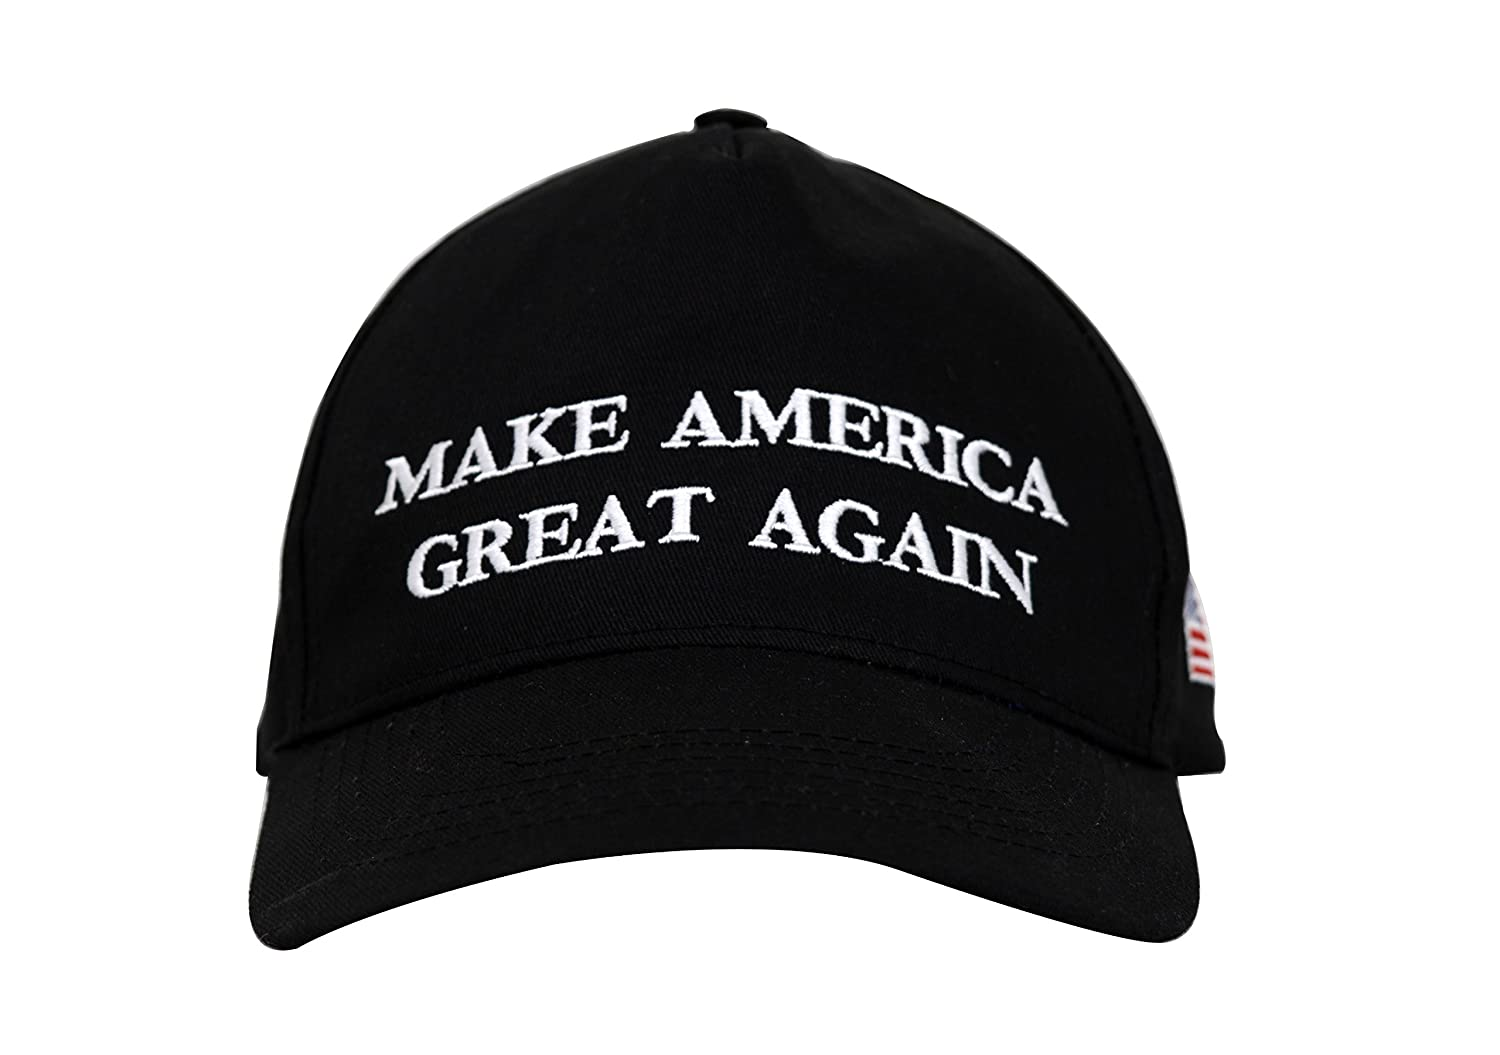 761c0862867 WEAR THIS HAT   MAKE A STATEMENT  If you are looking for cool and patriotic  hats to wear on a daily basis